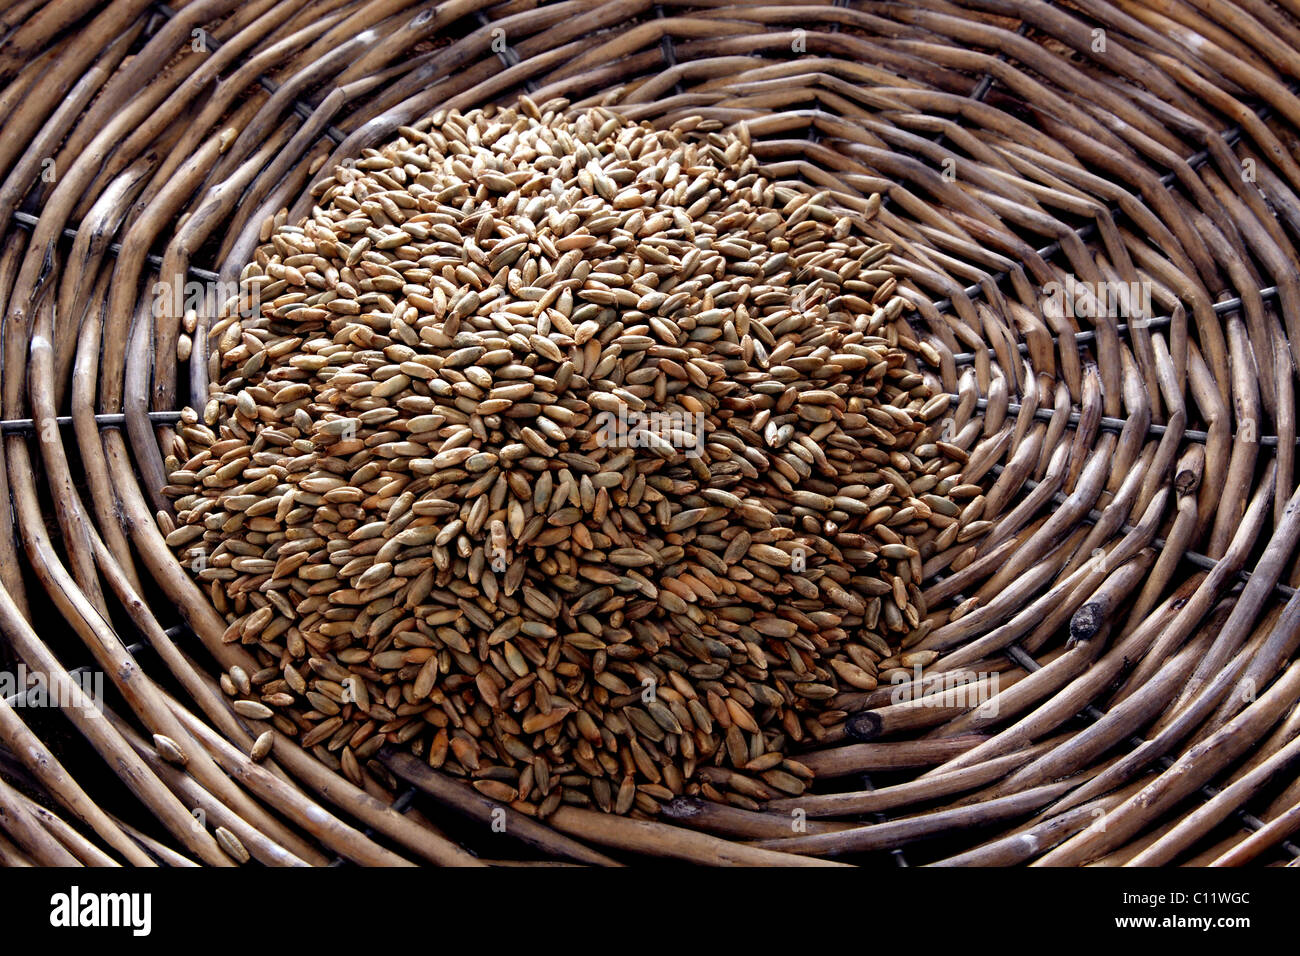 Rye (Secale cereale) in a wicker plate - Stock Image